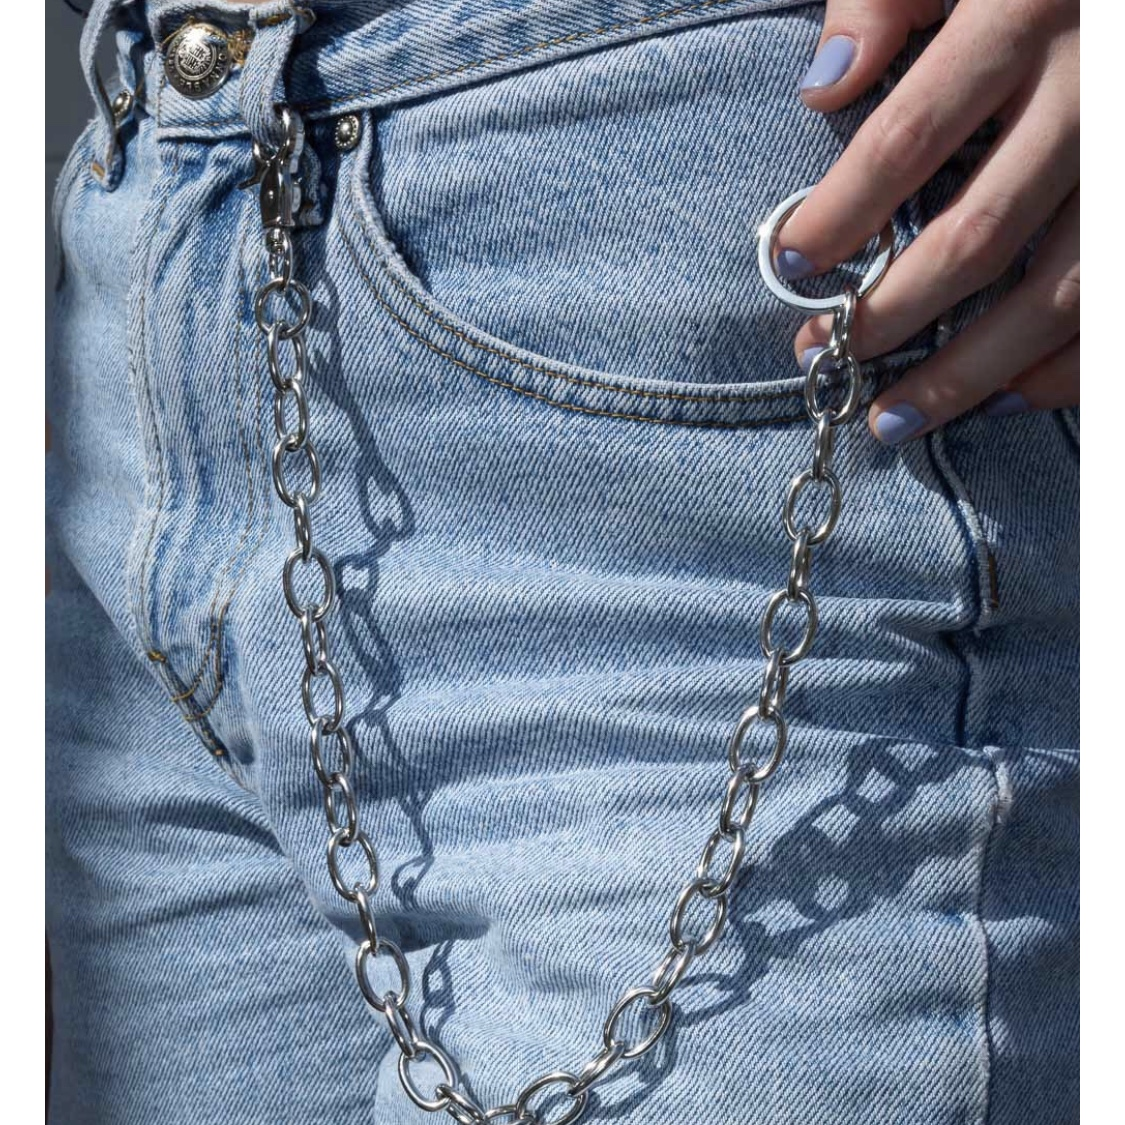 brandy melville silver pocket wallet chain NWT one size